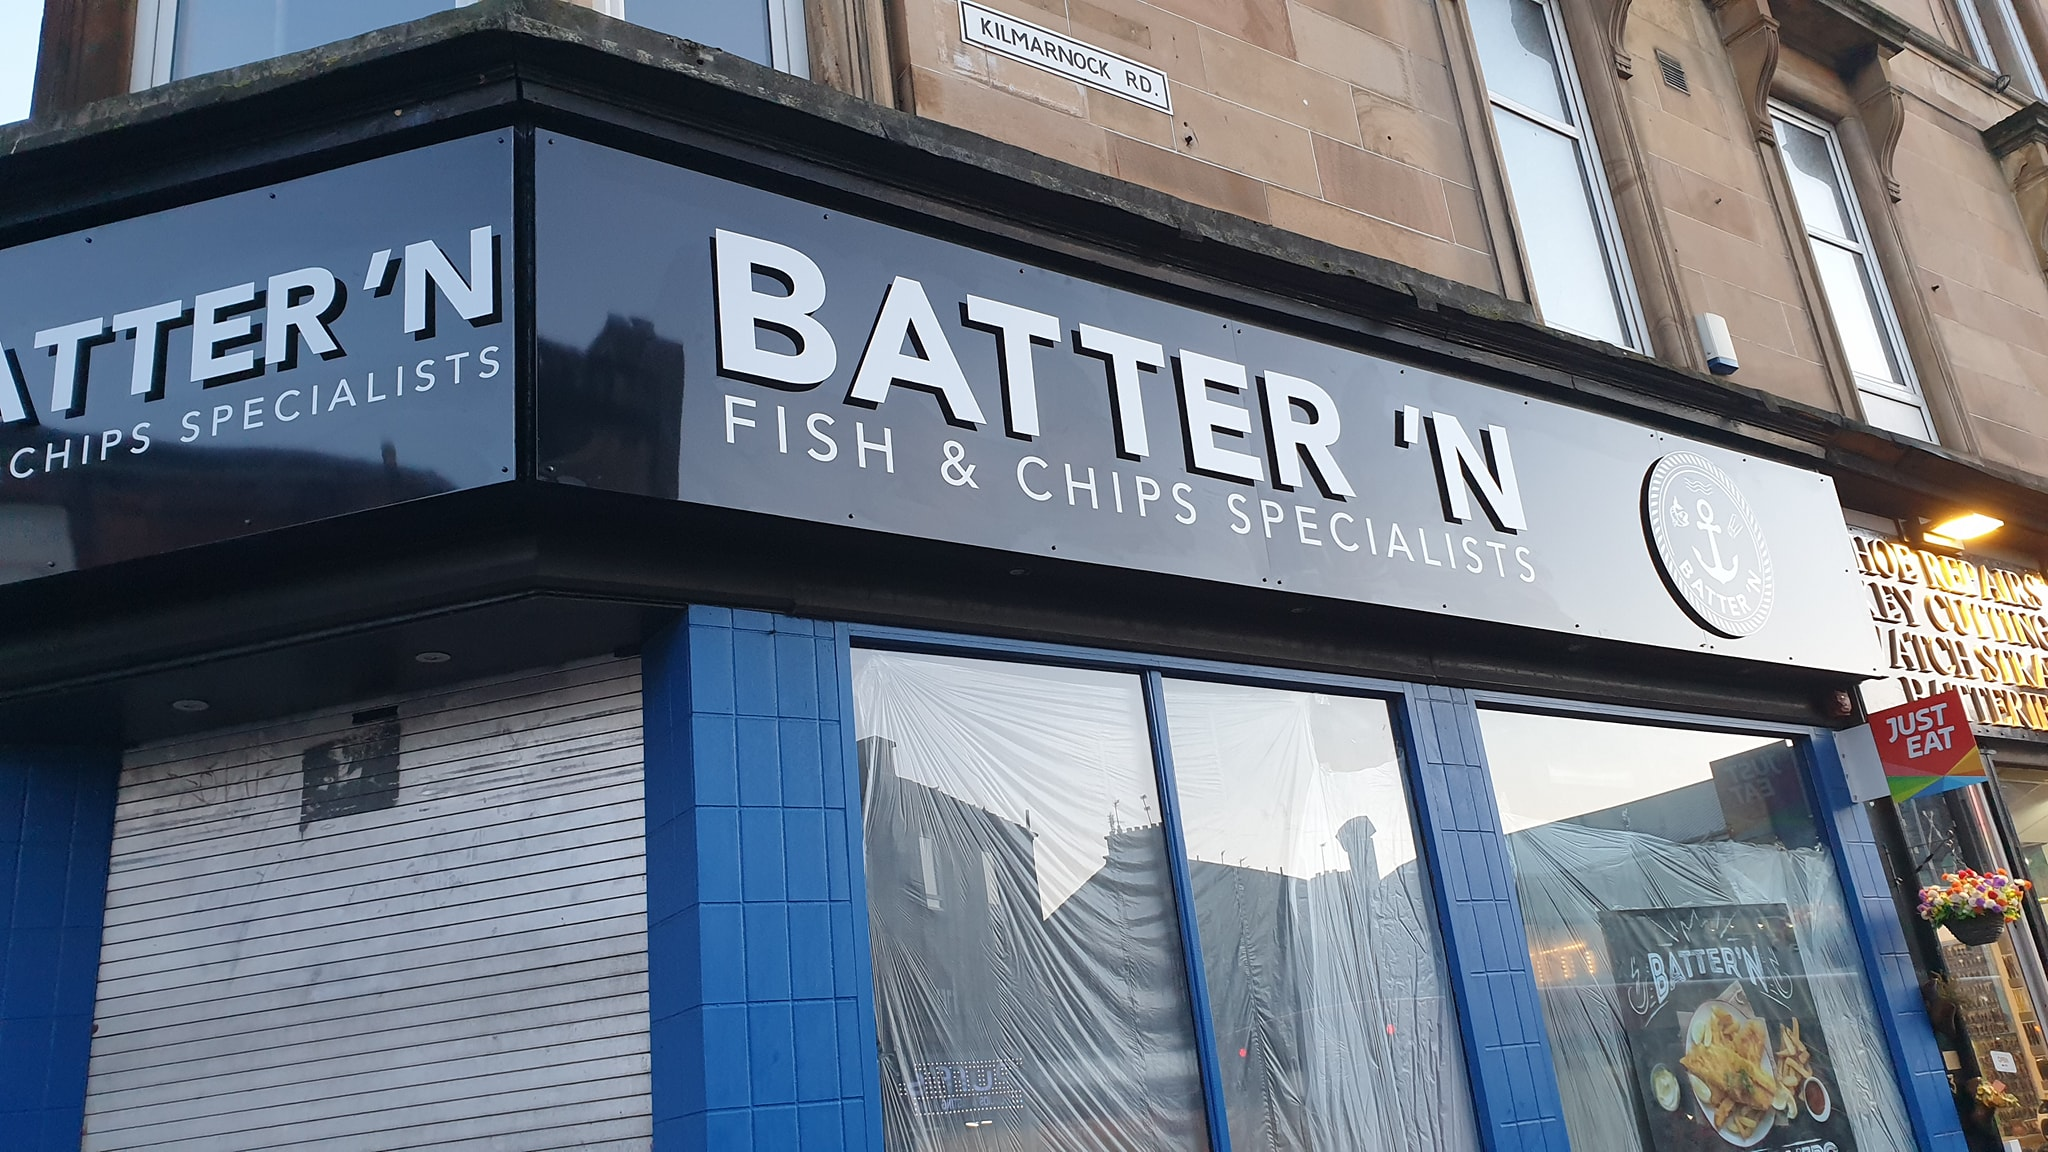 Batter 'N: New chippy to open in Shawlands